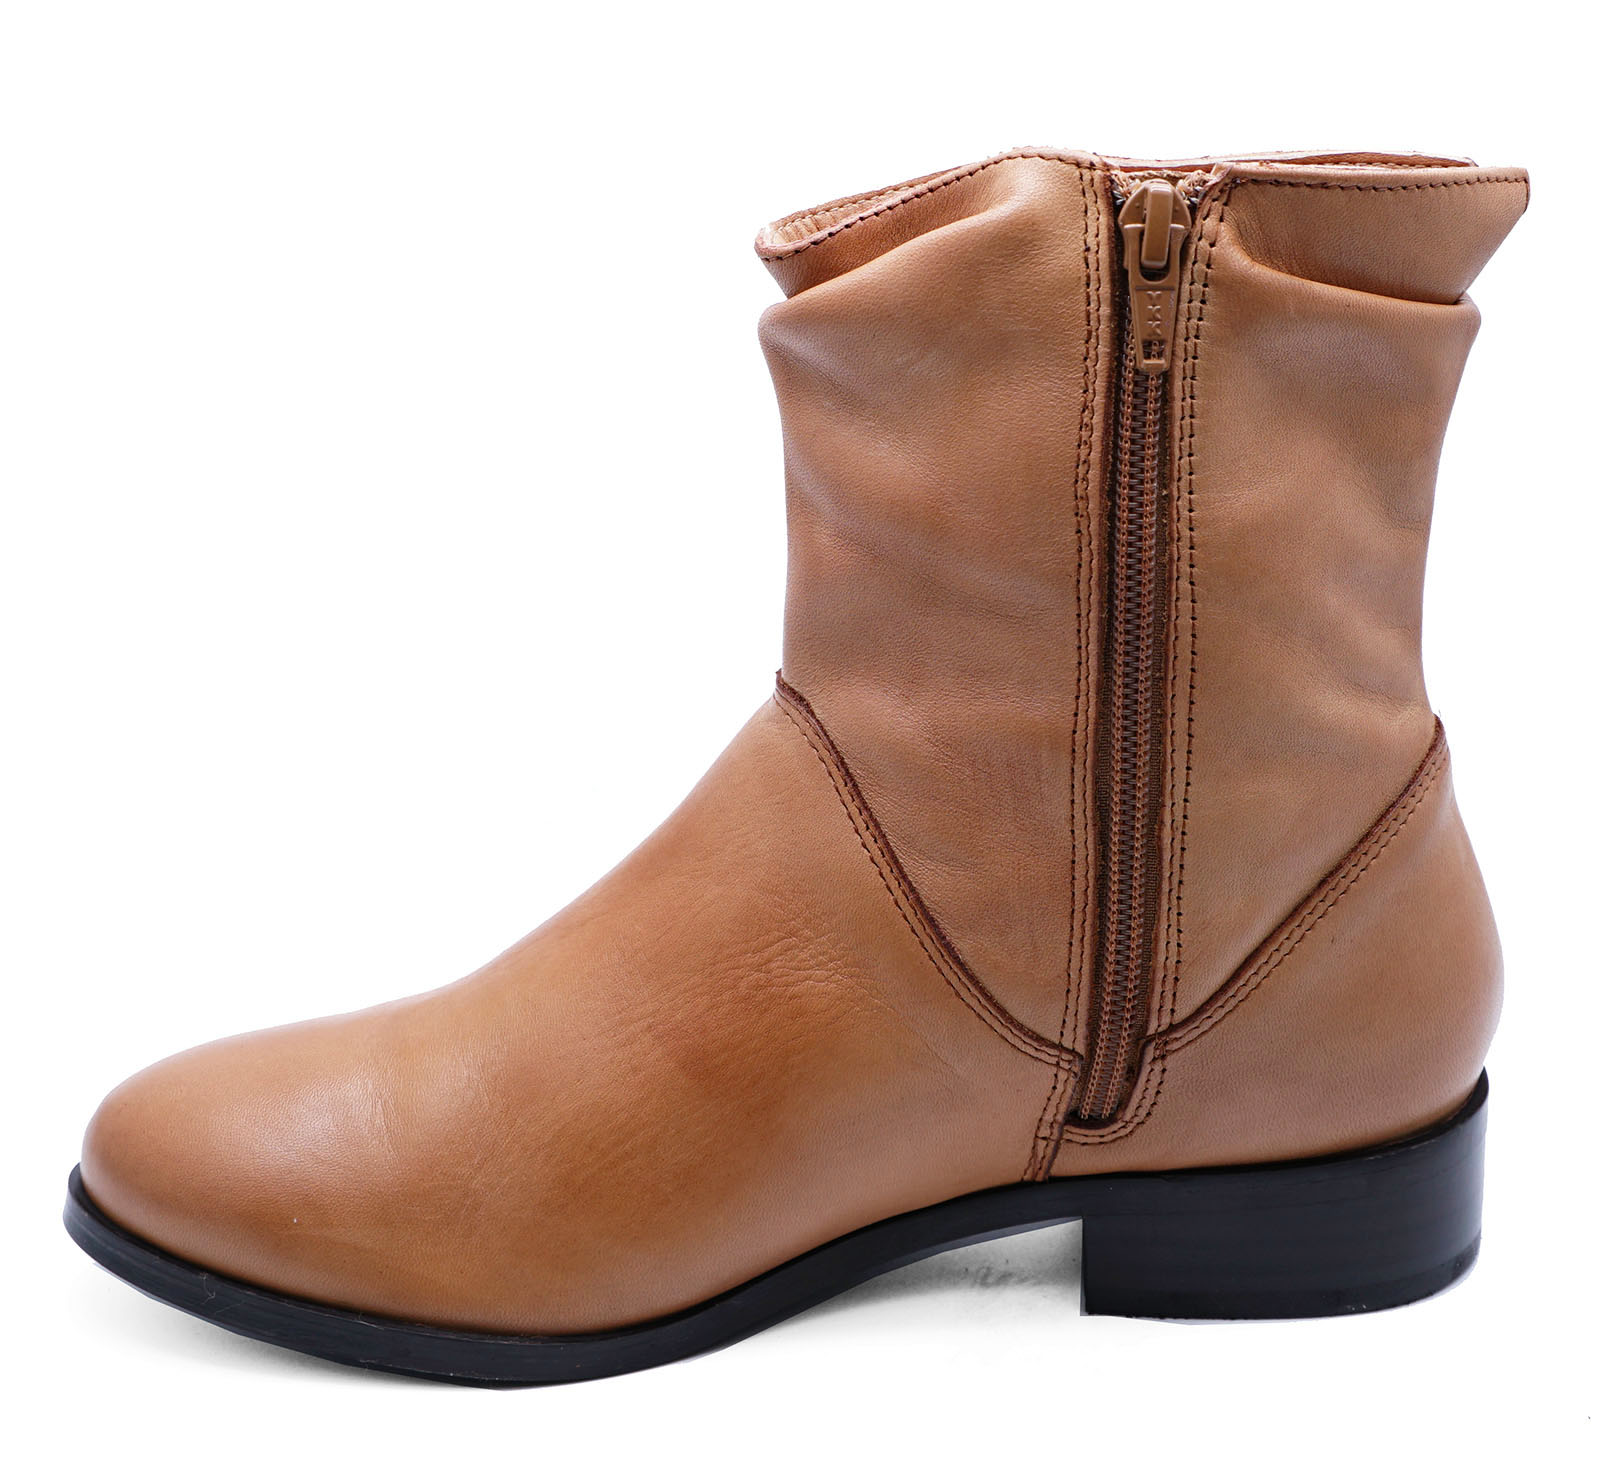 LADIES-FLAT-GENUINE-LEATHER-TAN-ZIP-UP-ANKLE-CALF-BOOTS-COMFY-SHOES-SIZES-2-9 thumbnail 28